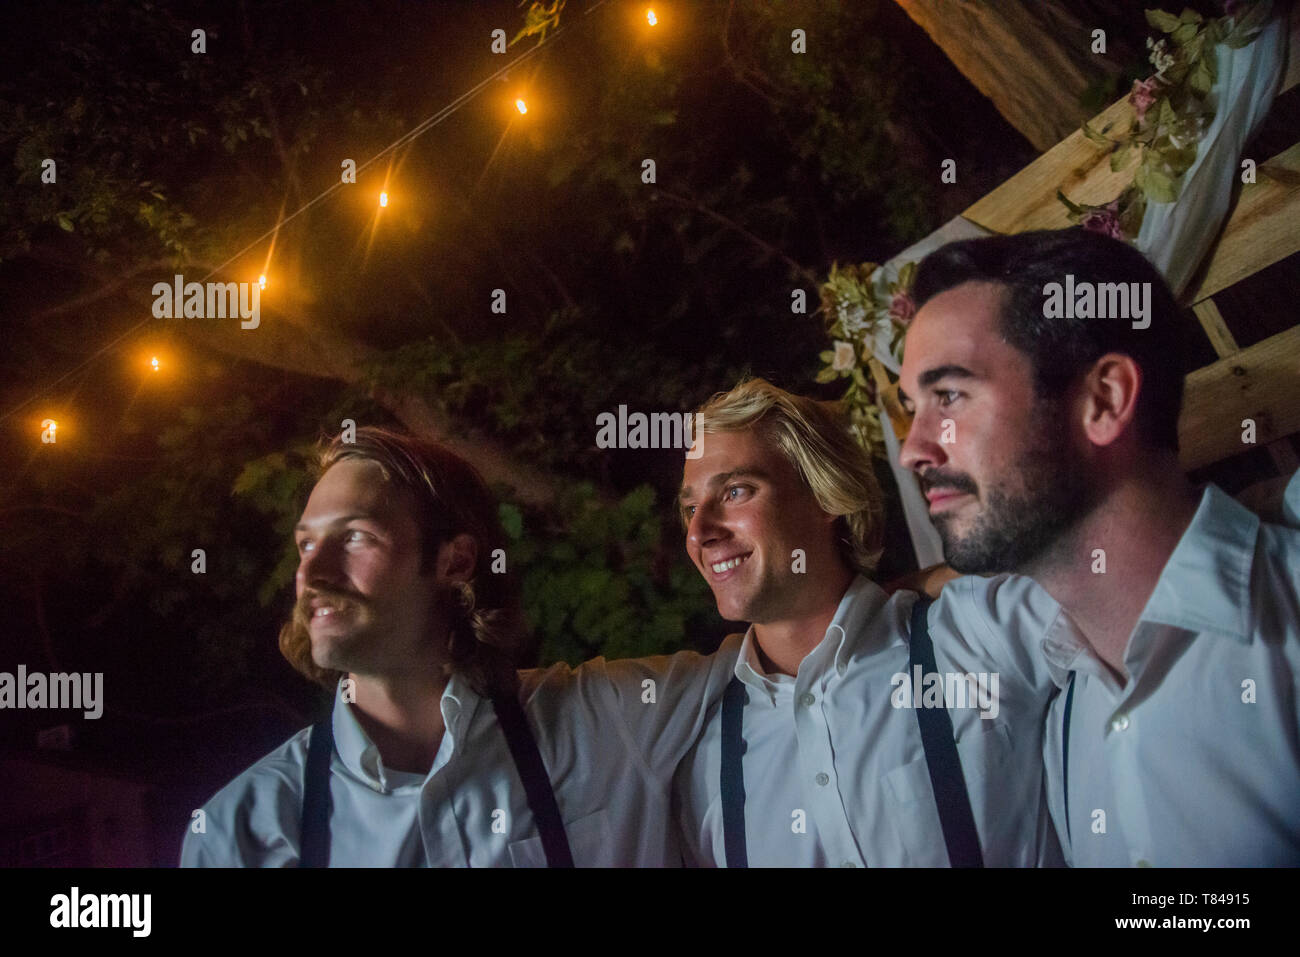 Three young men with arms around each other at outdoor wedding reception at night Stock Photo